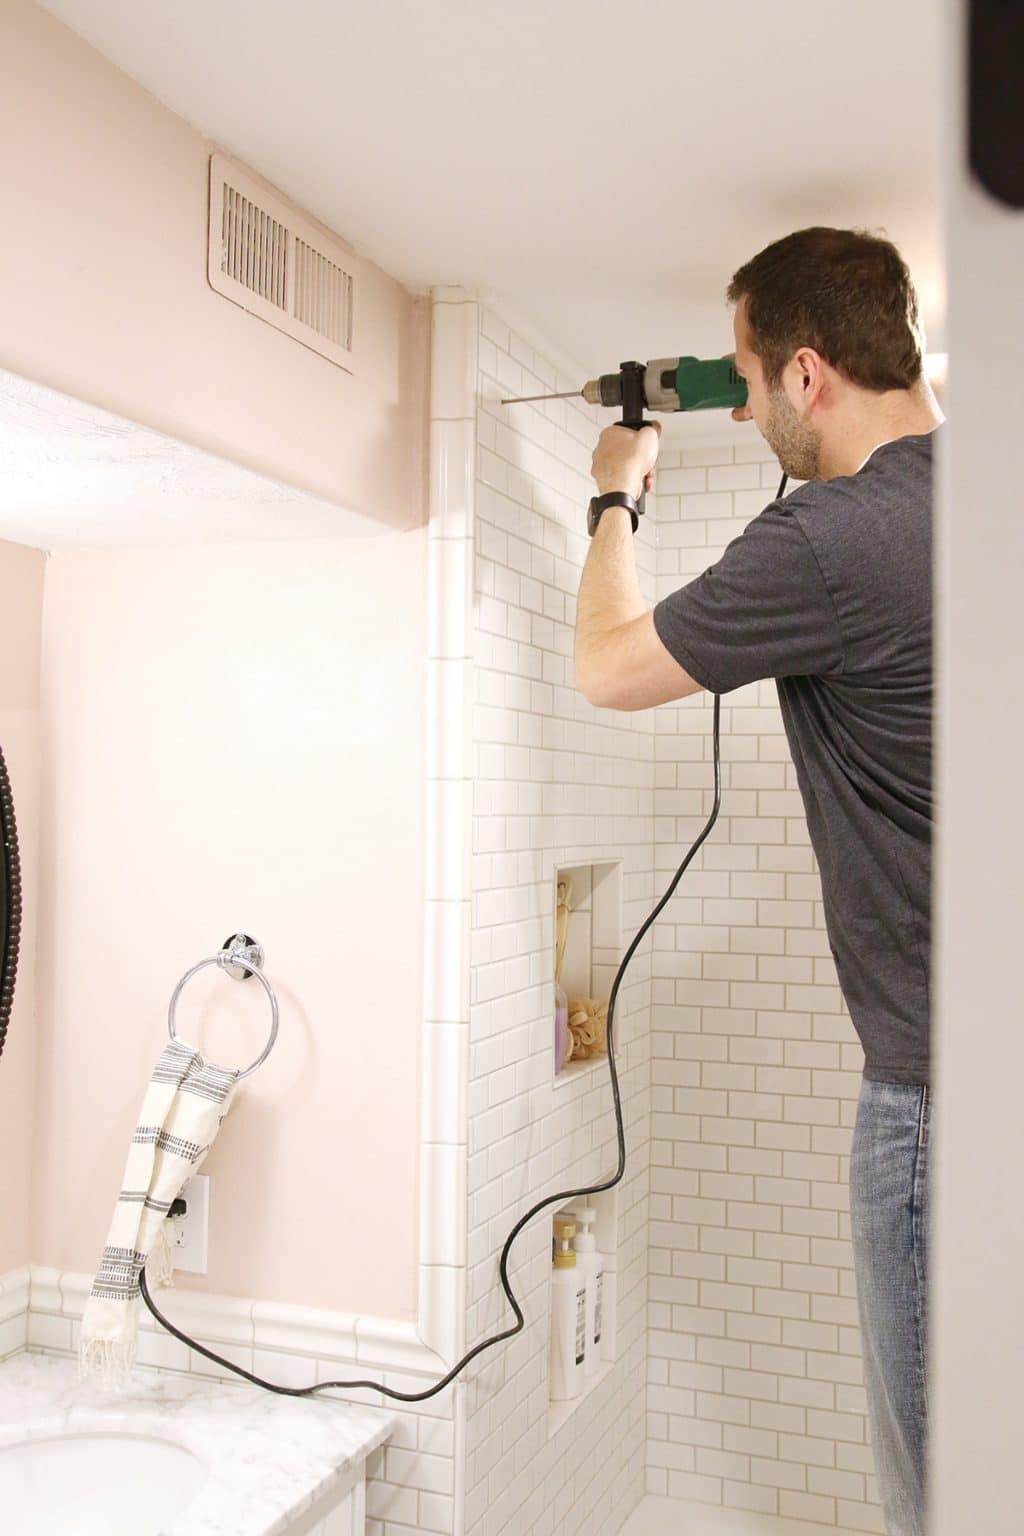 How To Drill Into Tile To Hang A Shower Curtain Chris Loves Julia